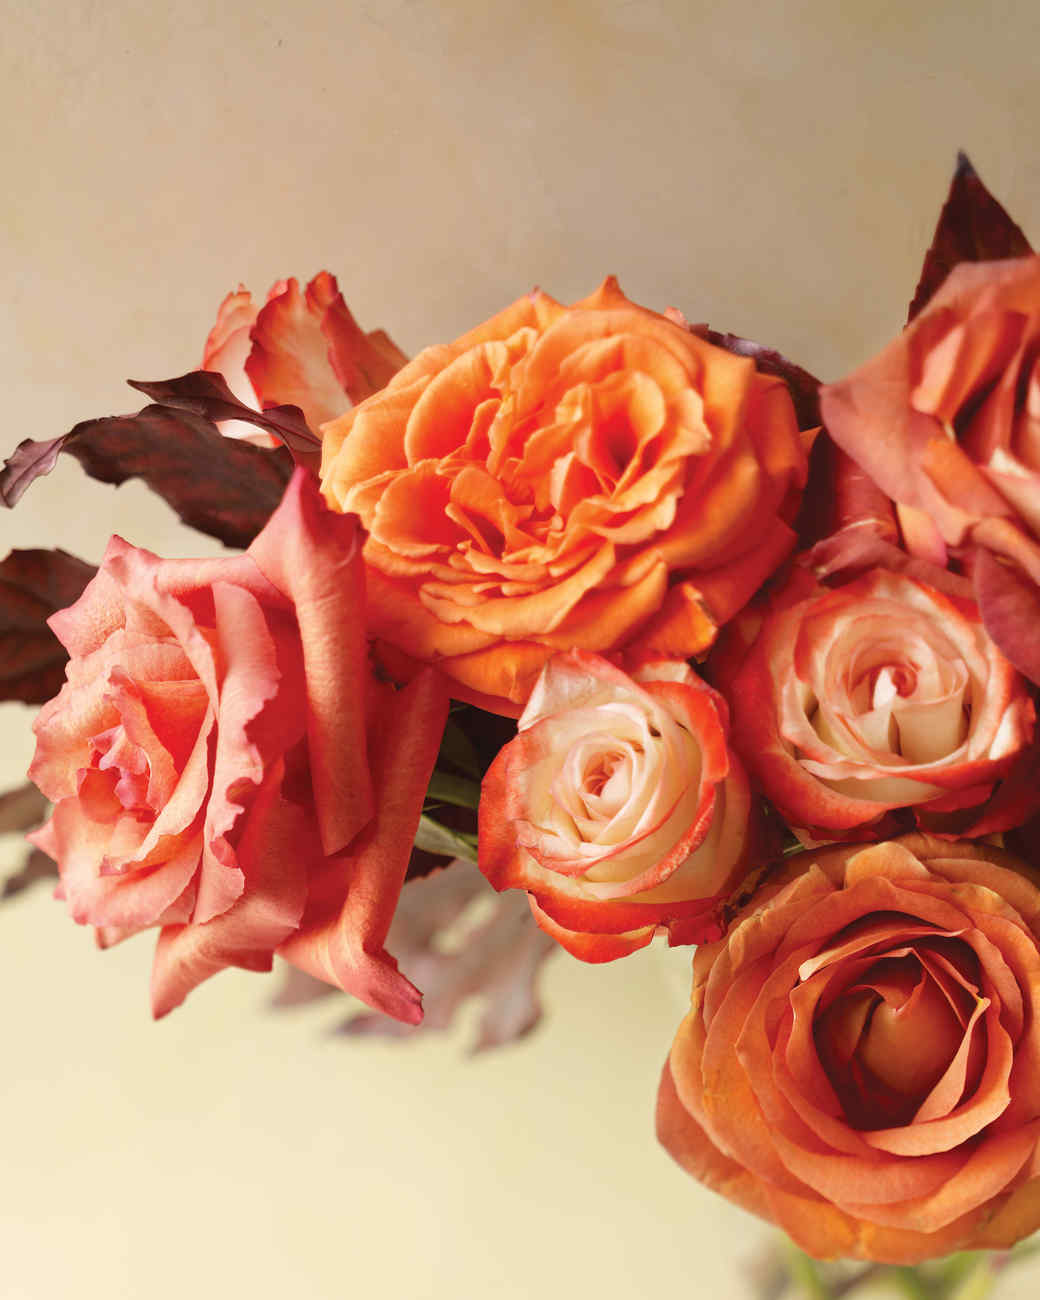 Orange Garden Rose rose arrangements | martha stewart